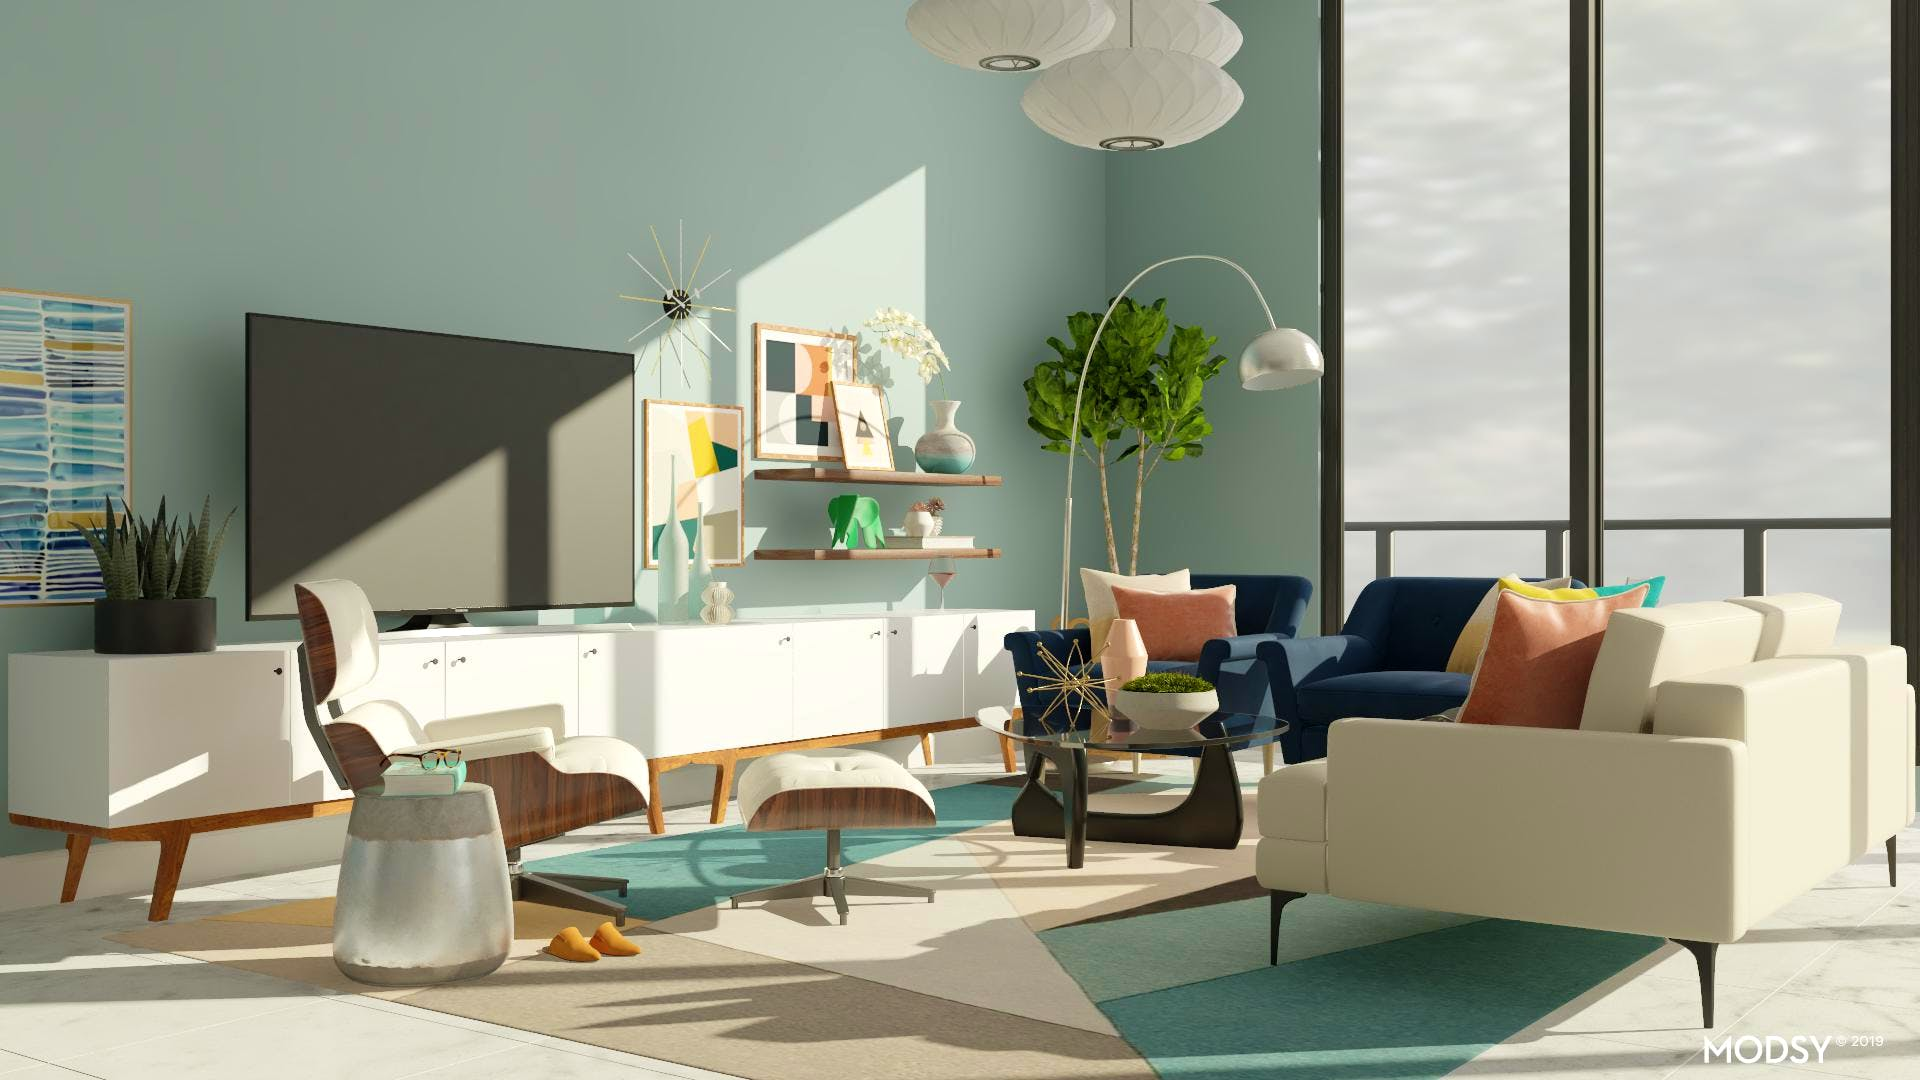 Eames Lounge Chair Living Room eames lounge chair design ideas and styles from modsy designers